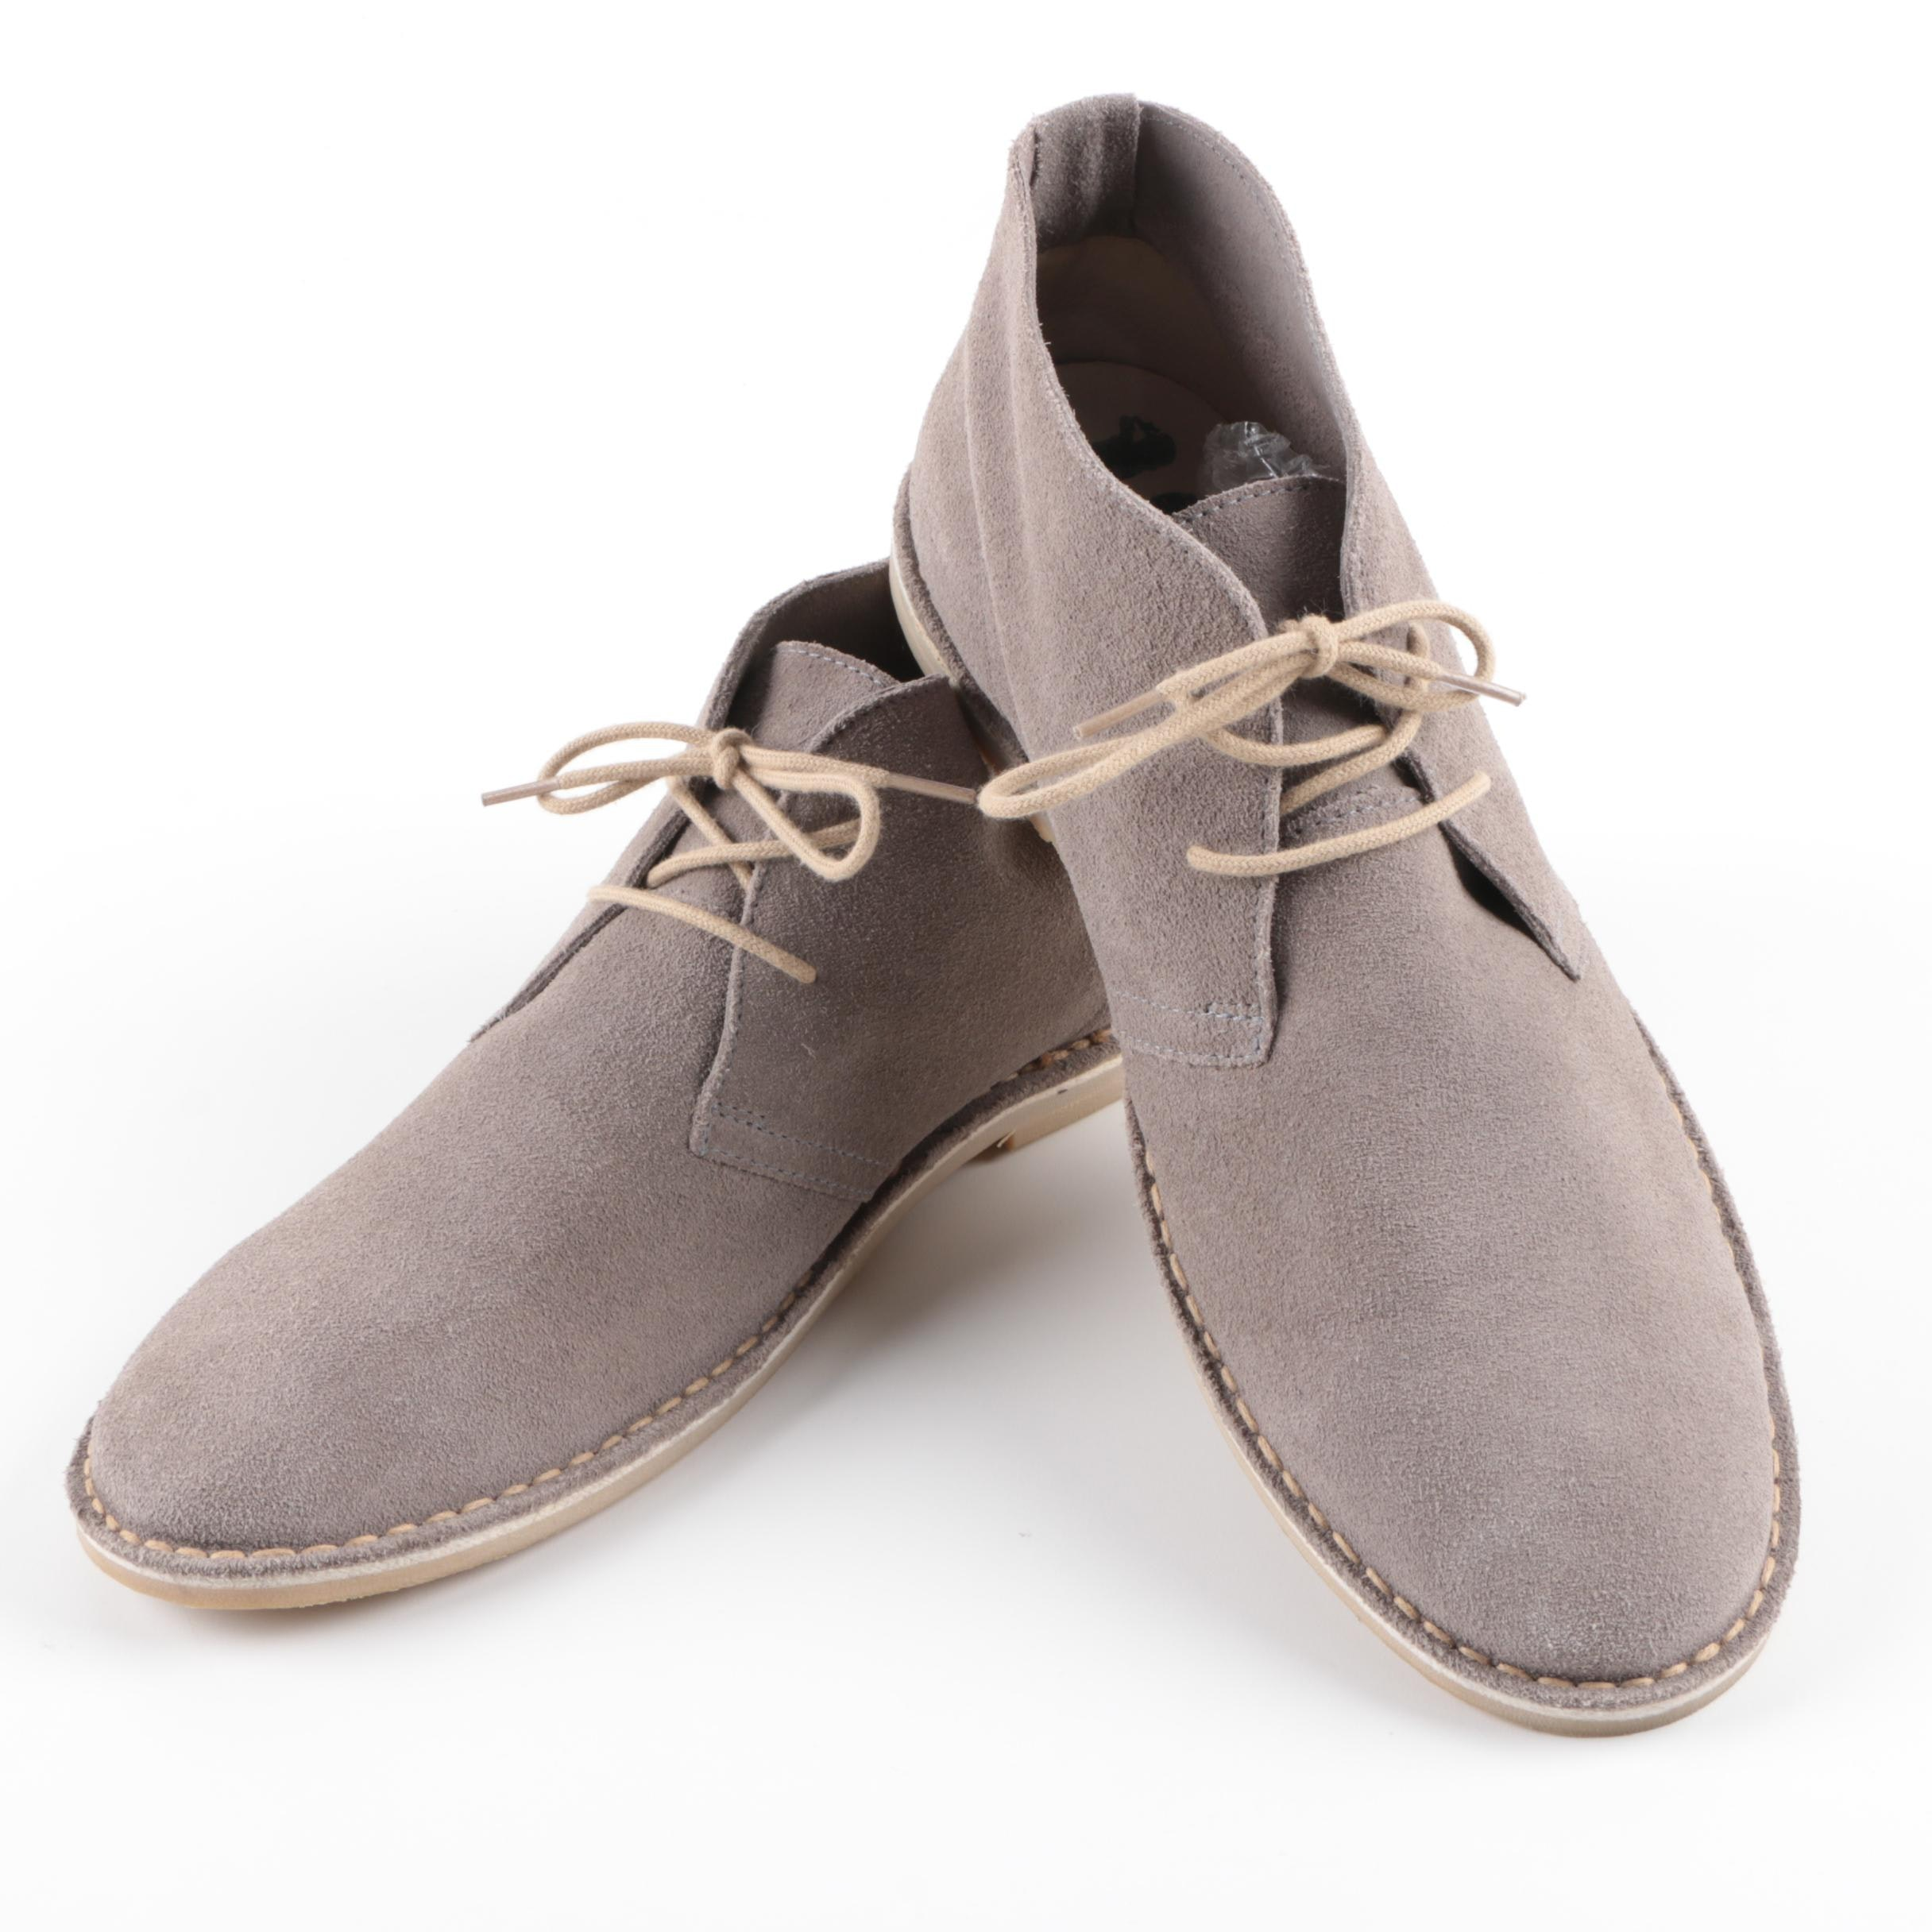 Men's 1901 Chukka Boots